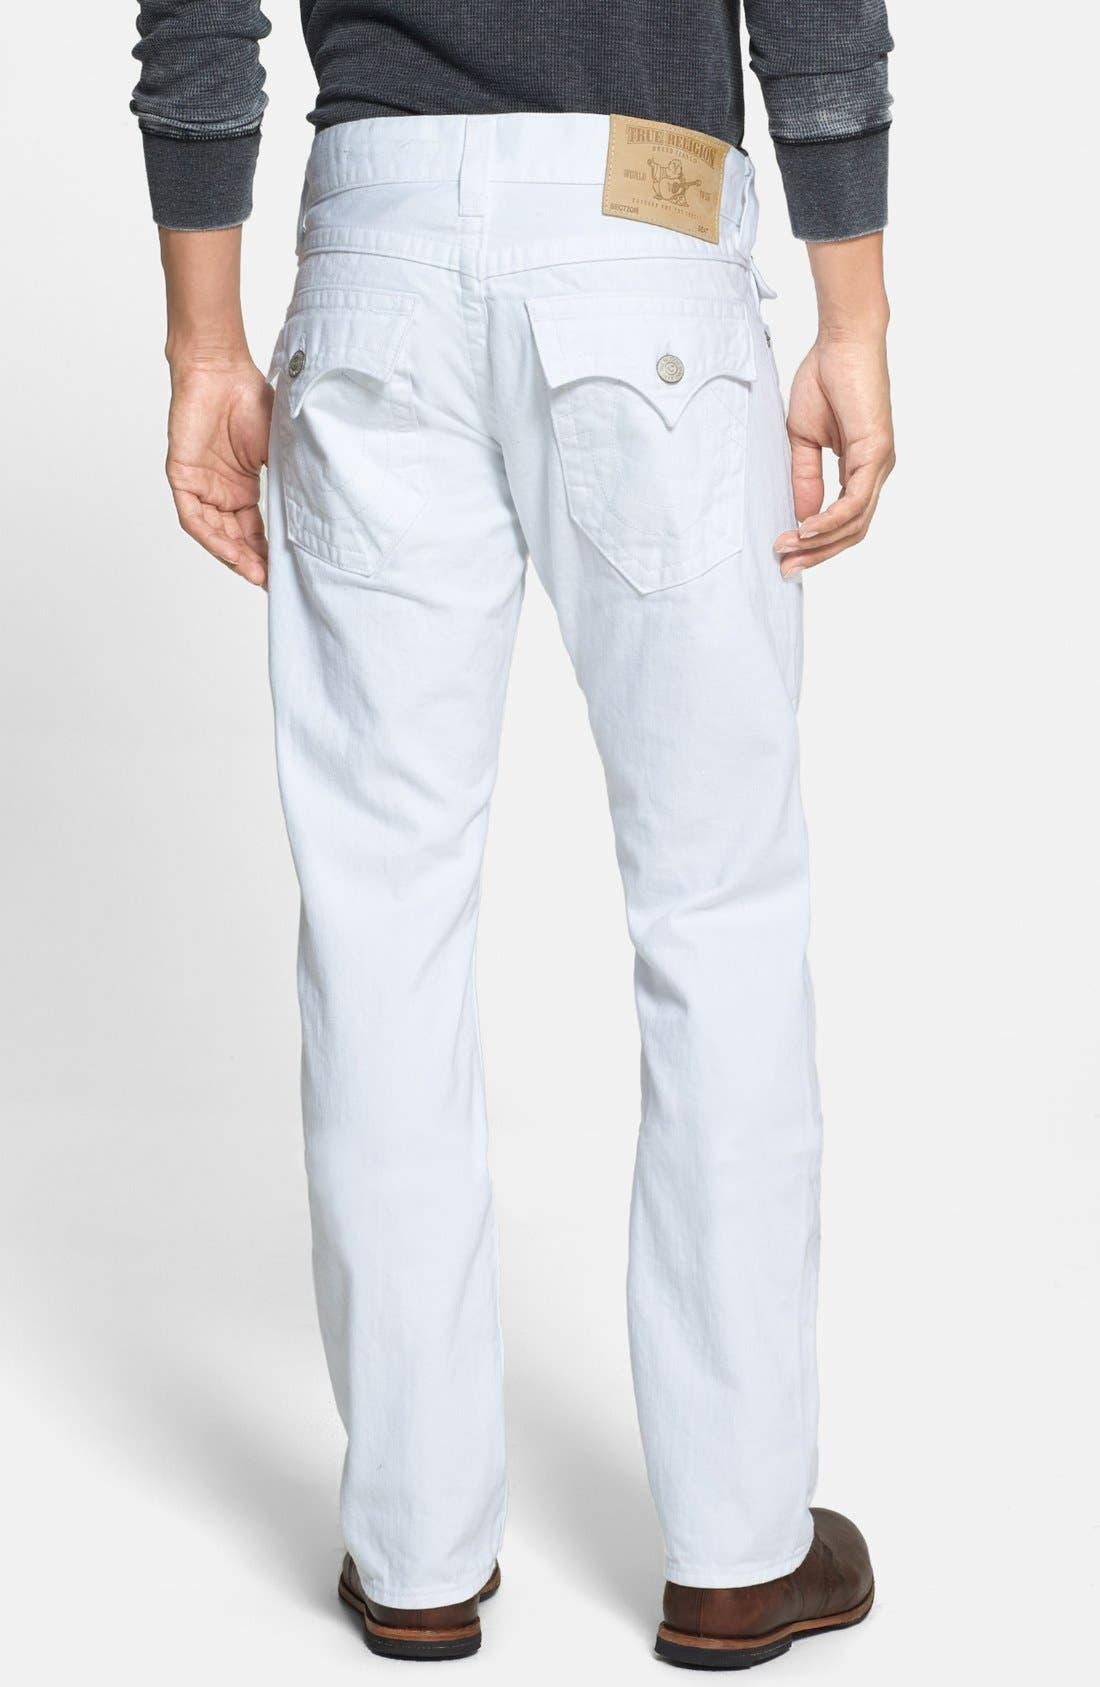 Main Image - True Religion Brand Jeans 'Ricky' Relaxed Fit Jeans (Optic White)